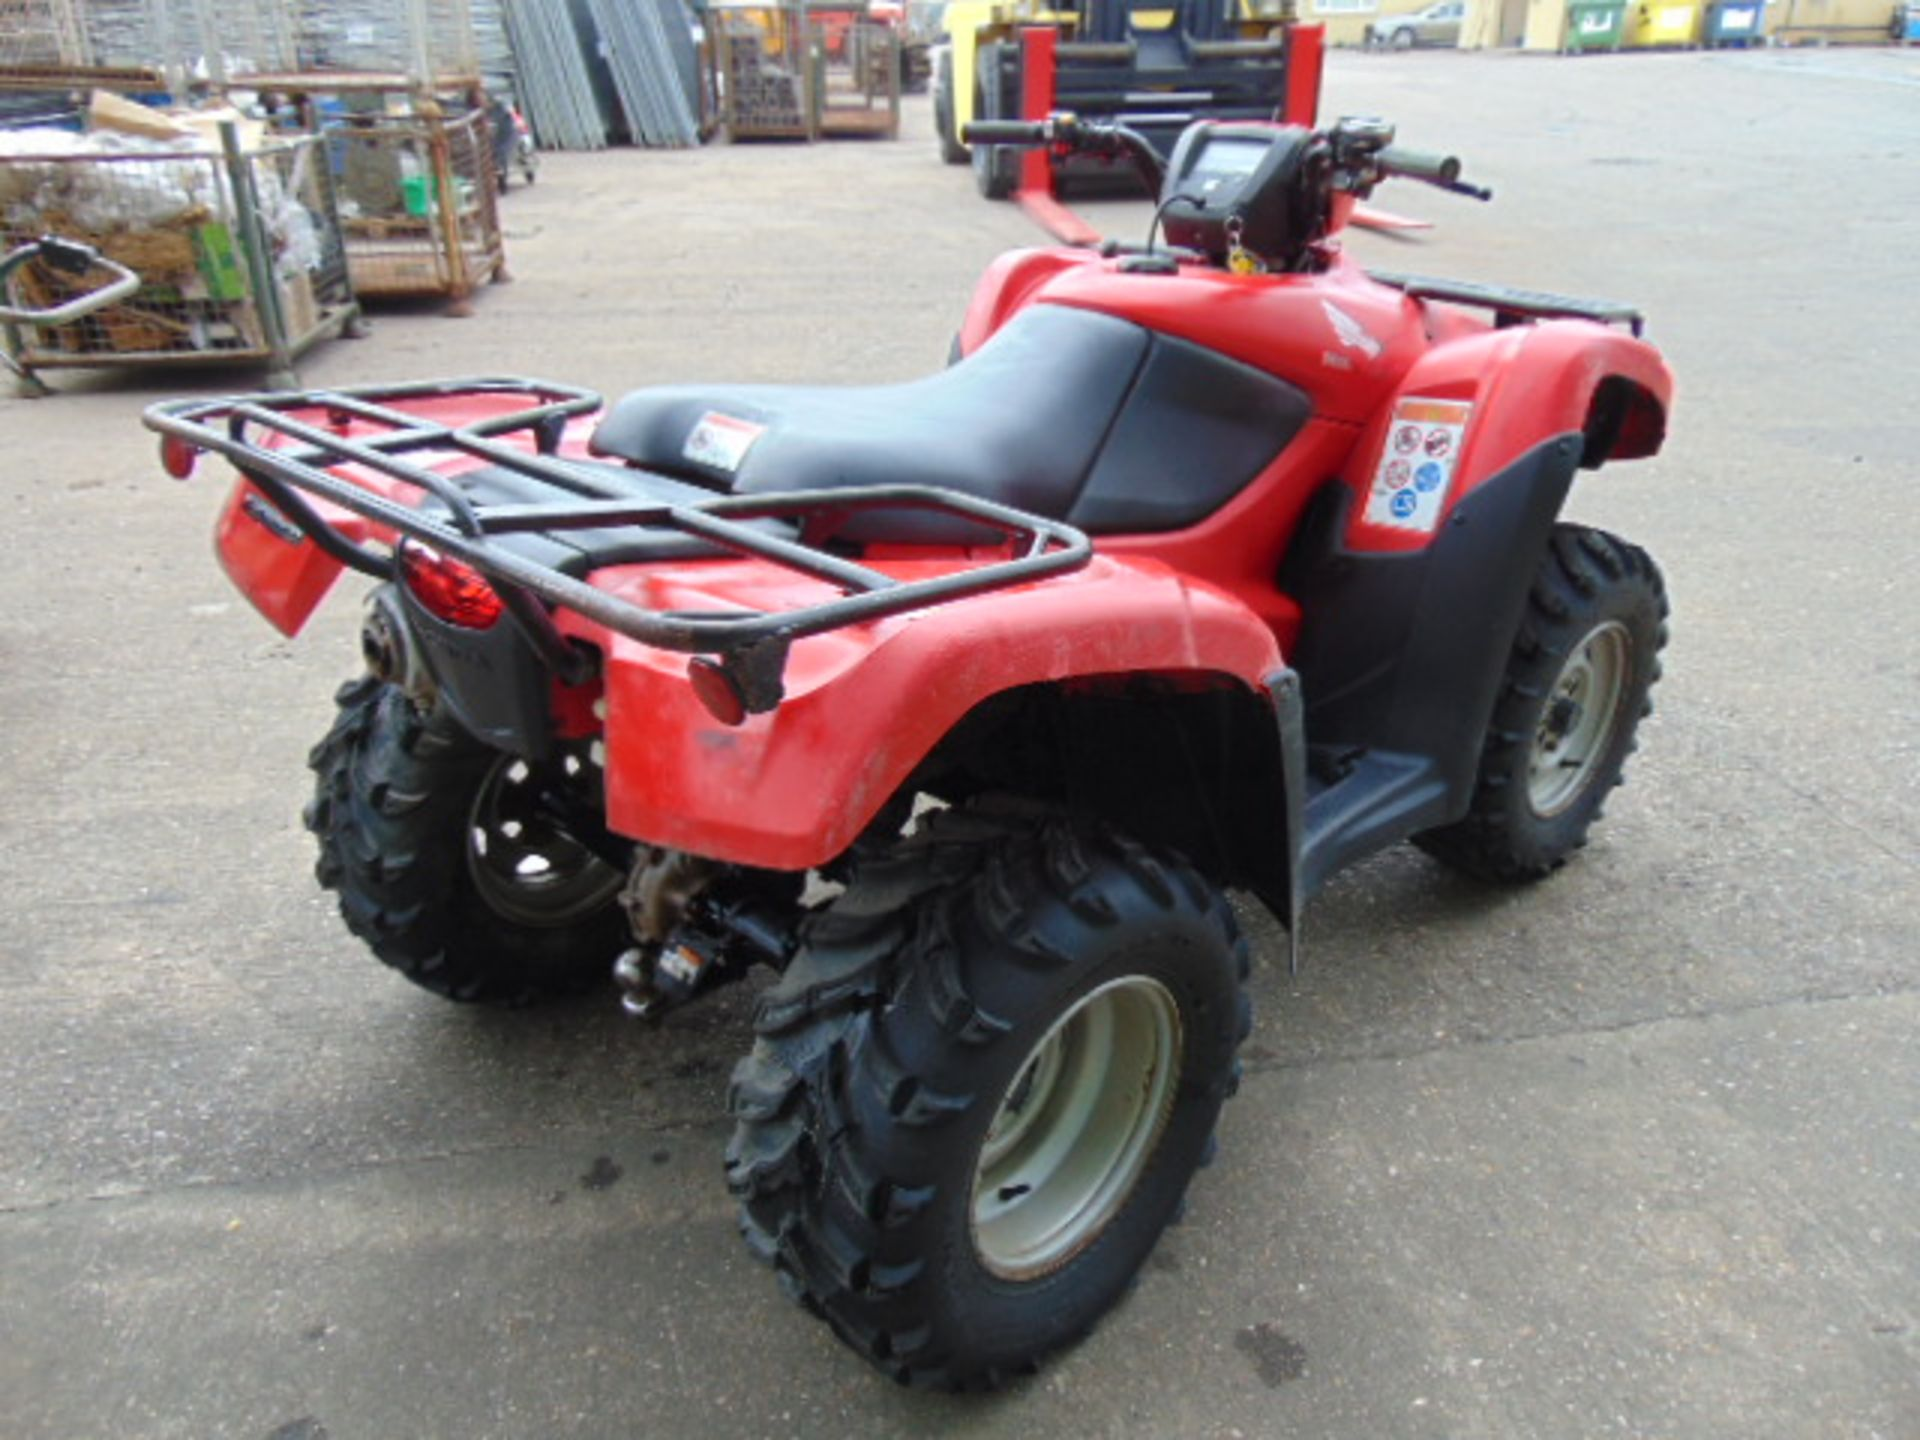 Honda TRX 500 4WD Quad Bike ONLY 2,300 HOURS! - Image 8 of 20